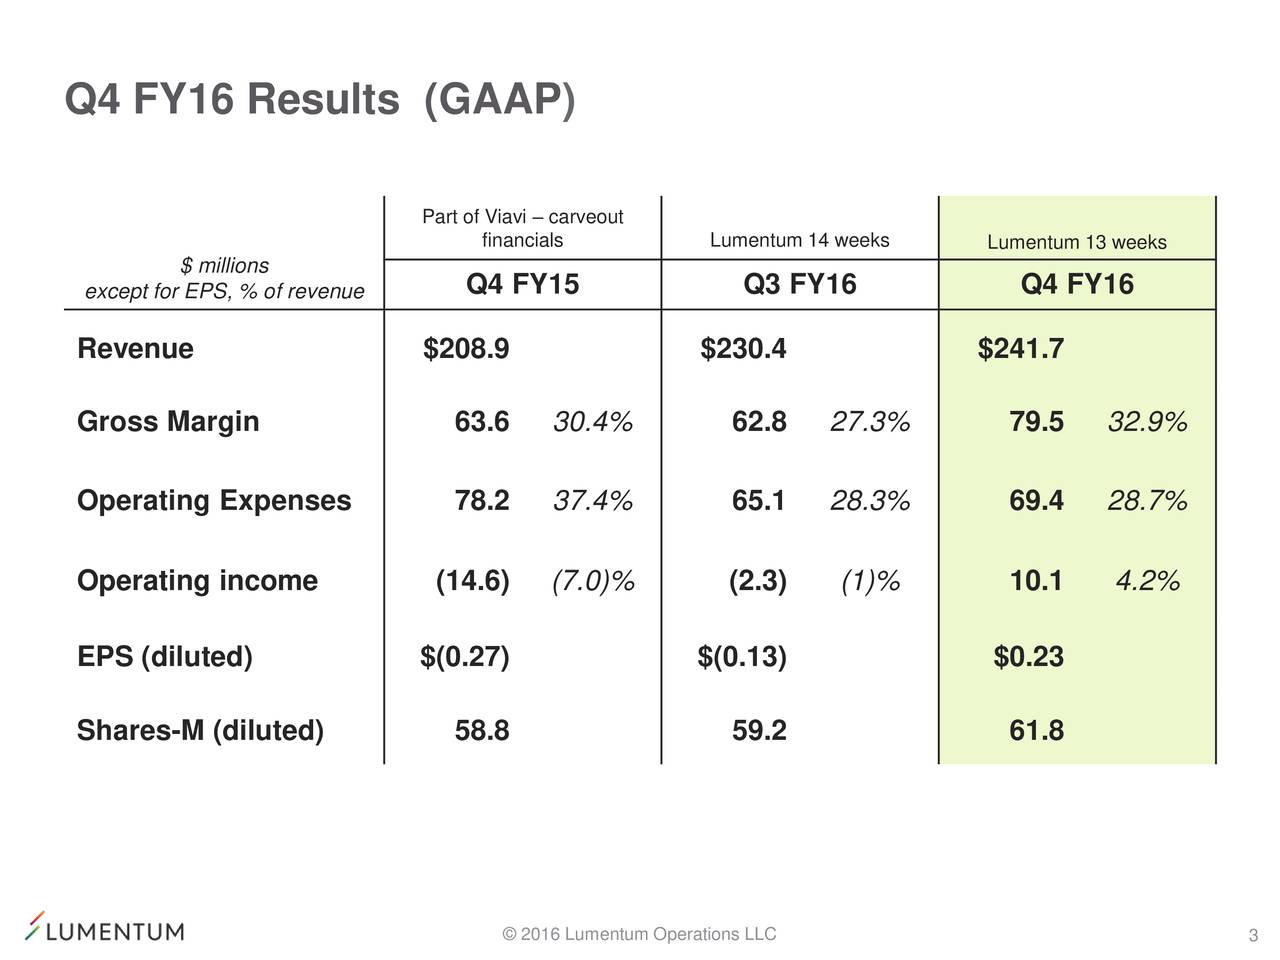 Part of Viavi  carveout financials Lumentum 14 weeks Lumentum 13 weeks except for EPS, % of revenue Q4 FY15 Q3 FY16 Q4 FY16 Revenue $208.9 $230.4 $241.7 Gross Margin 63.6 30.4% 62.8 27.3% 79.5 32.9% Operating Expenses 78.2 37.4% 65.1 28.3% 69.4 28.7% Operating income (14.6) (7.0)% (2.3) (1)% 10.1 4.2% EPS (diluted) $(0.27) $(0.13) $0.23 Shares-M (diluted) 58.8 59.2 61.8 2016 Lumentum Operations LLC 3